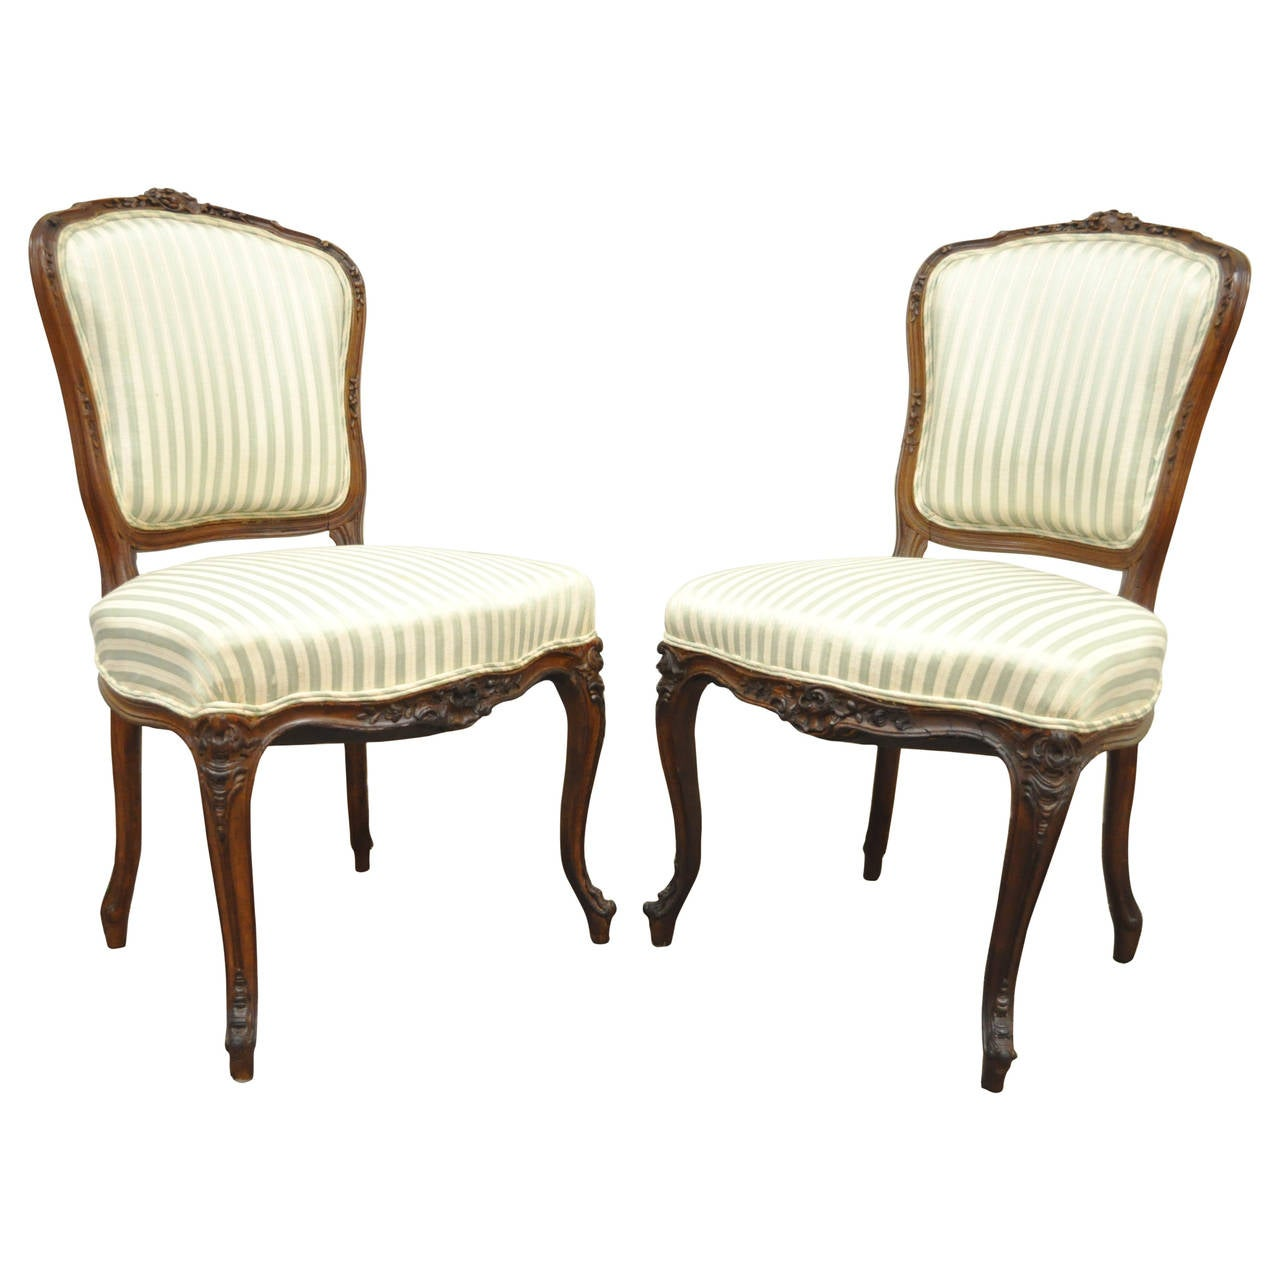 Louis xv dining chair - Pair Of 19th Century Carved Walnut French Louis Xv Style Side Chairs 1